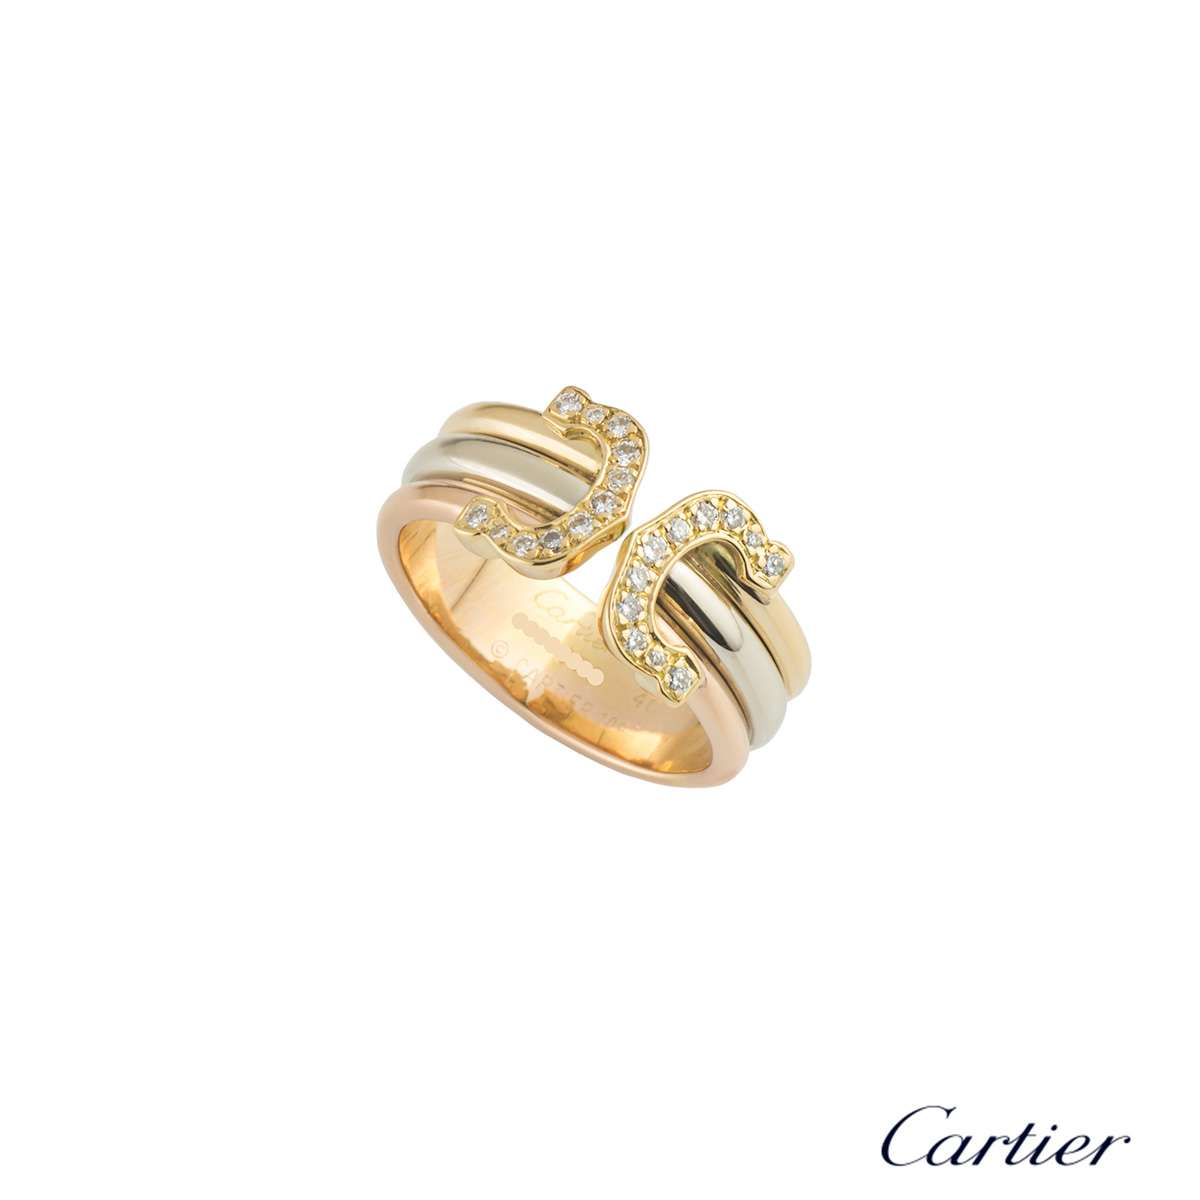 rings z gold j cartier img id sale cocktail jewelry at for org ring paris diamond